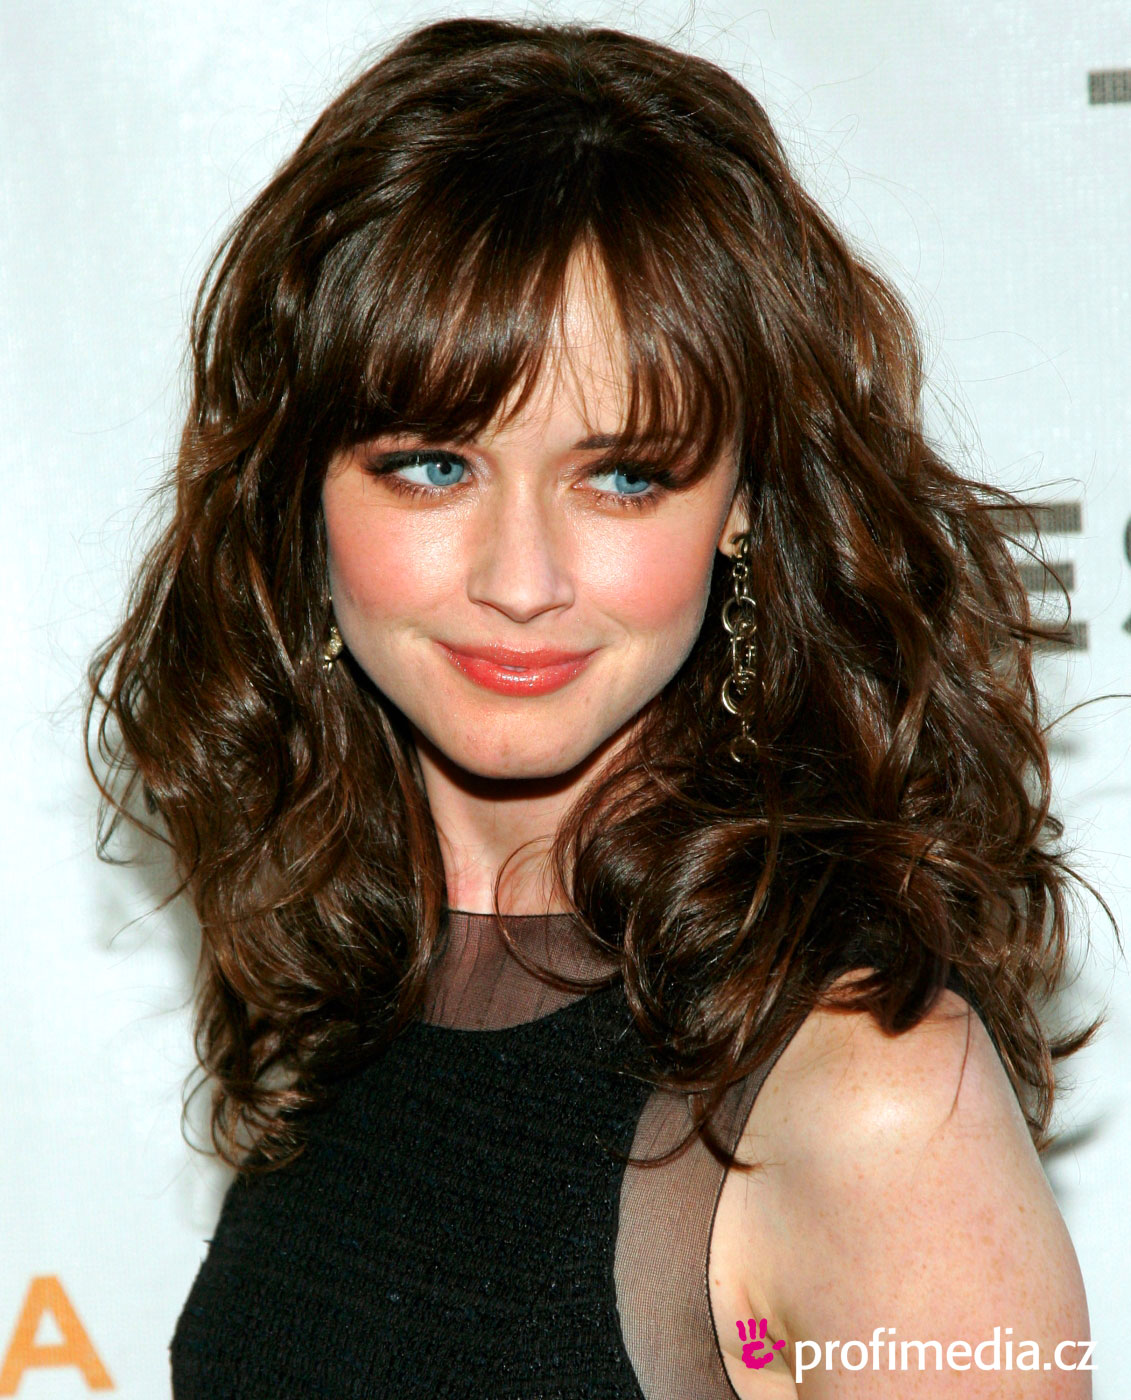 alexis bledel frisur zum ausprobieren in efrisuren. Black Bedroom Furniture Sets. Home Design Ideas